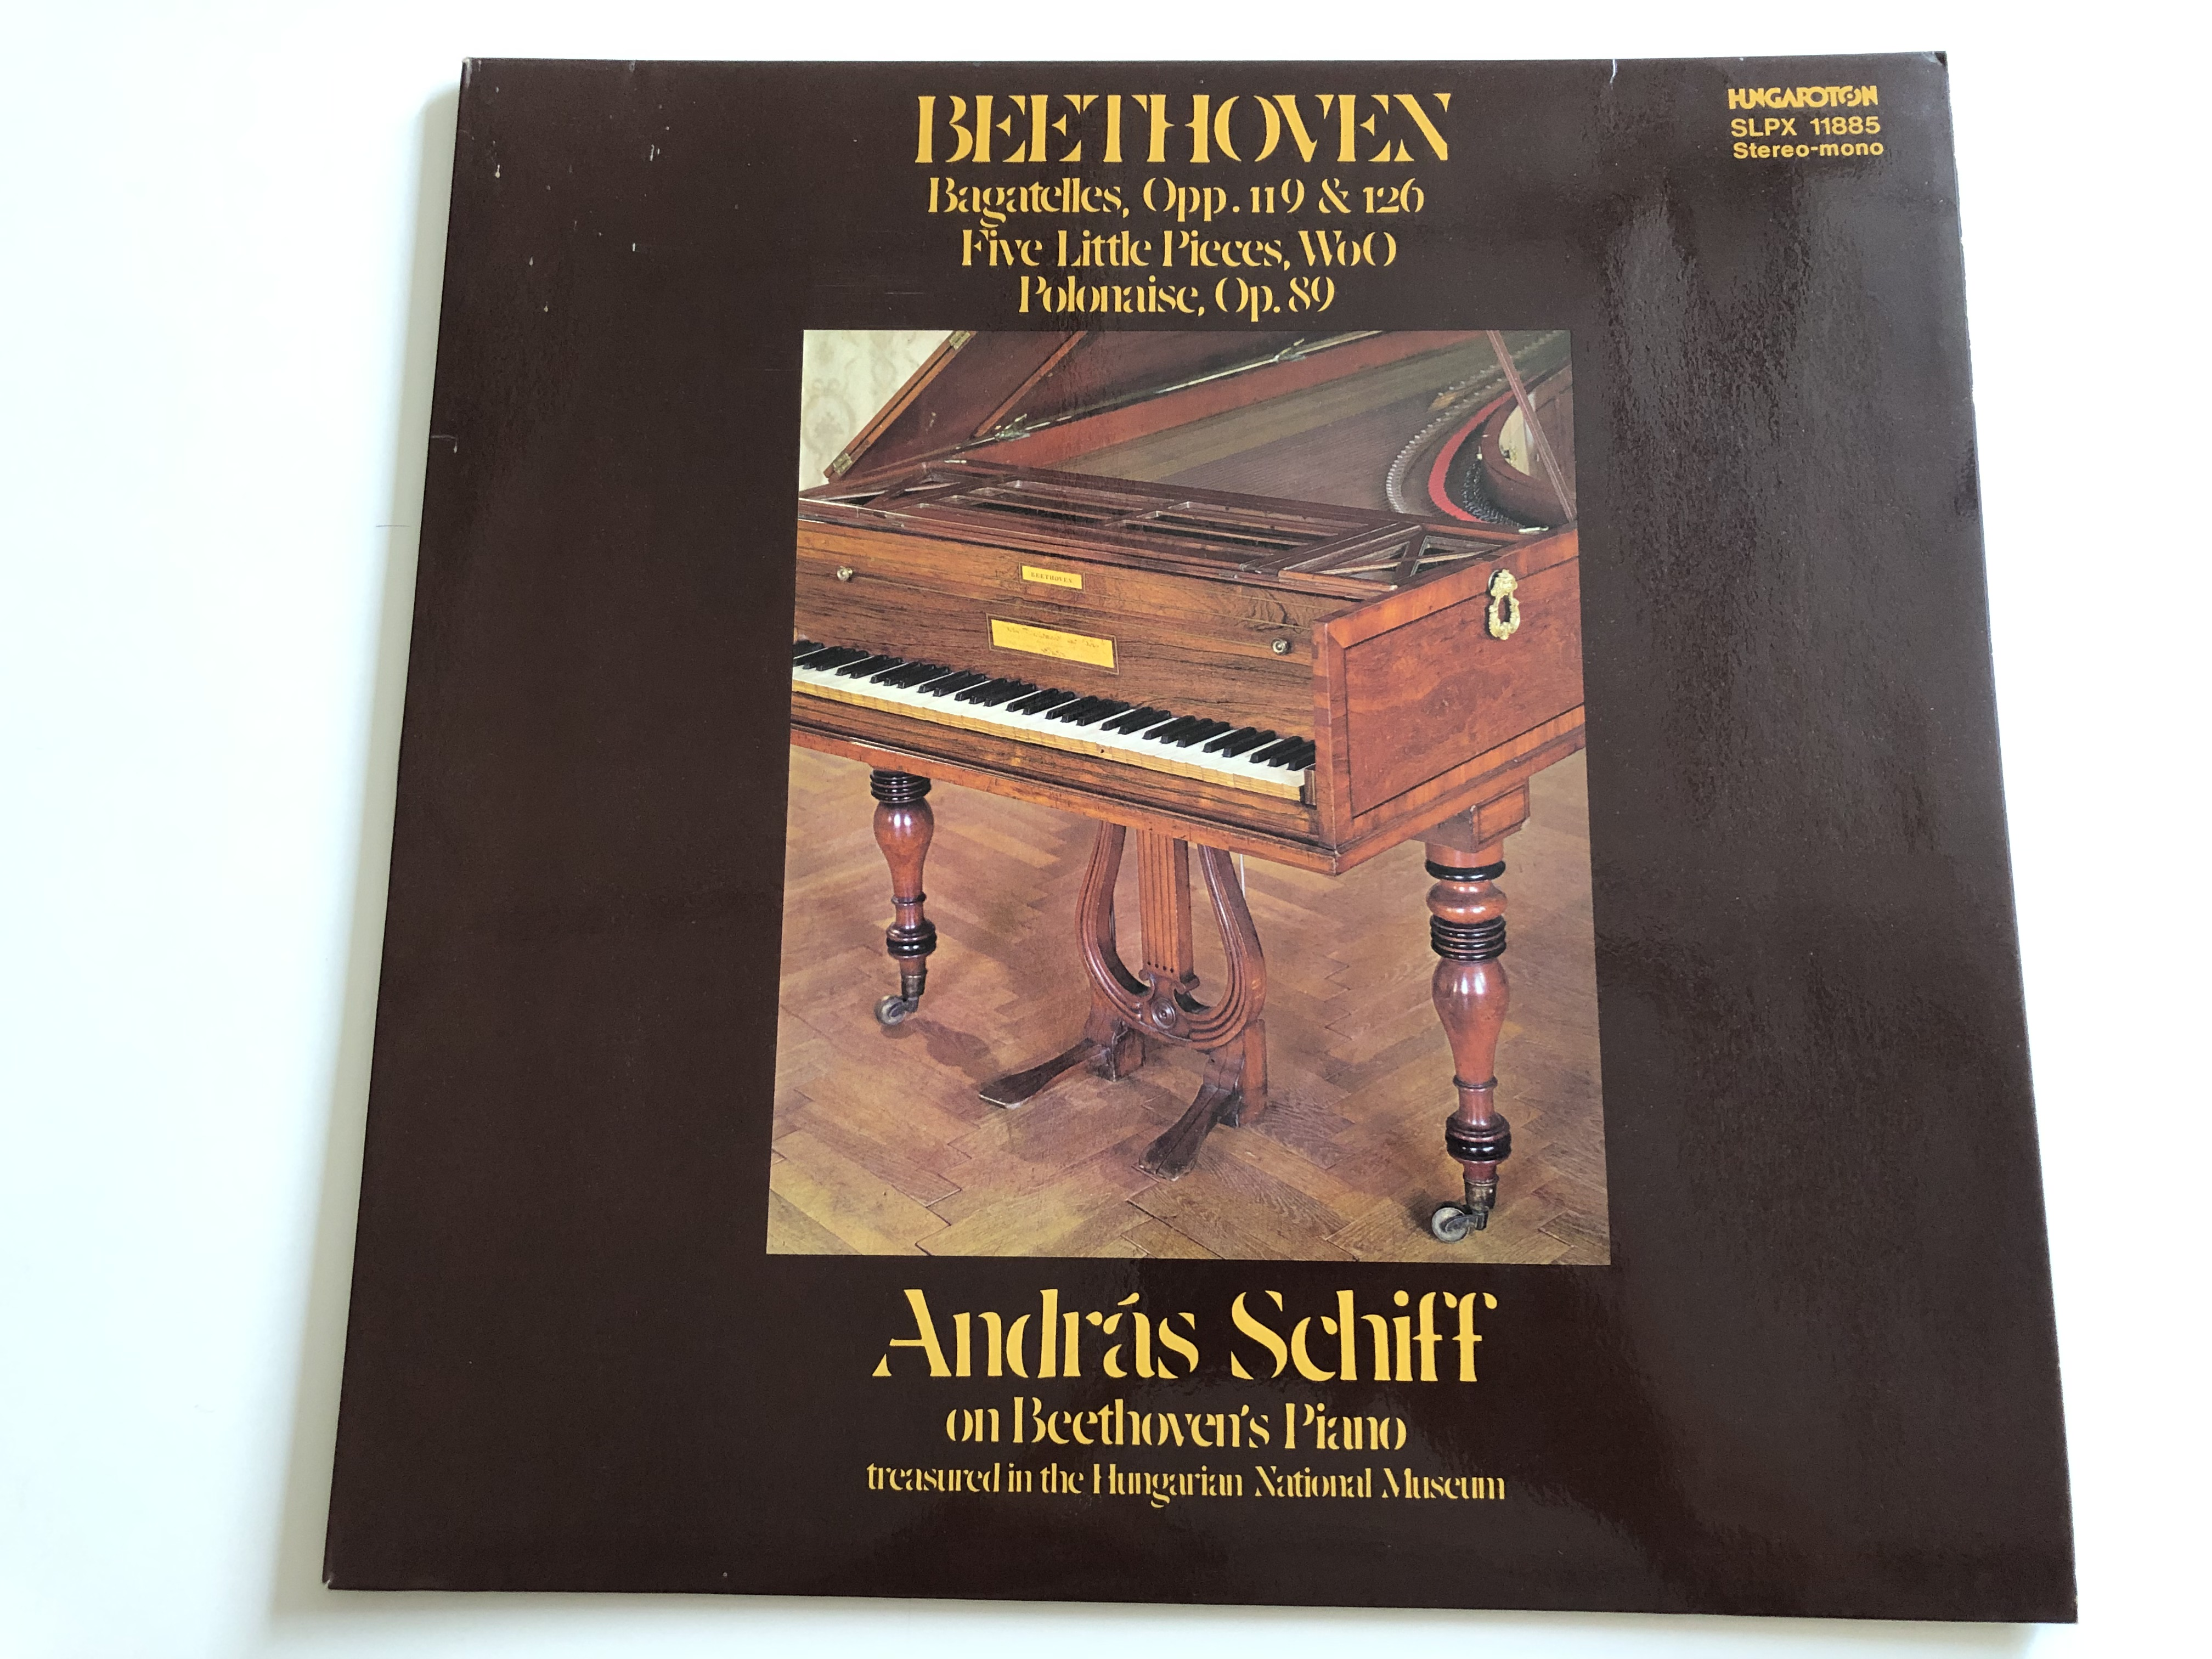 beethoven-bagatelles-op.-119-126-five-little-pieces-woo-polonaise-op.-89-andr-s-schiff-on-beethoven-s-piano-hungaroton-lp-stereo-mono-slpx-11885-1-.jpg